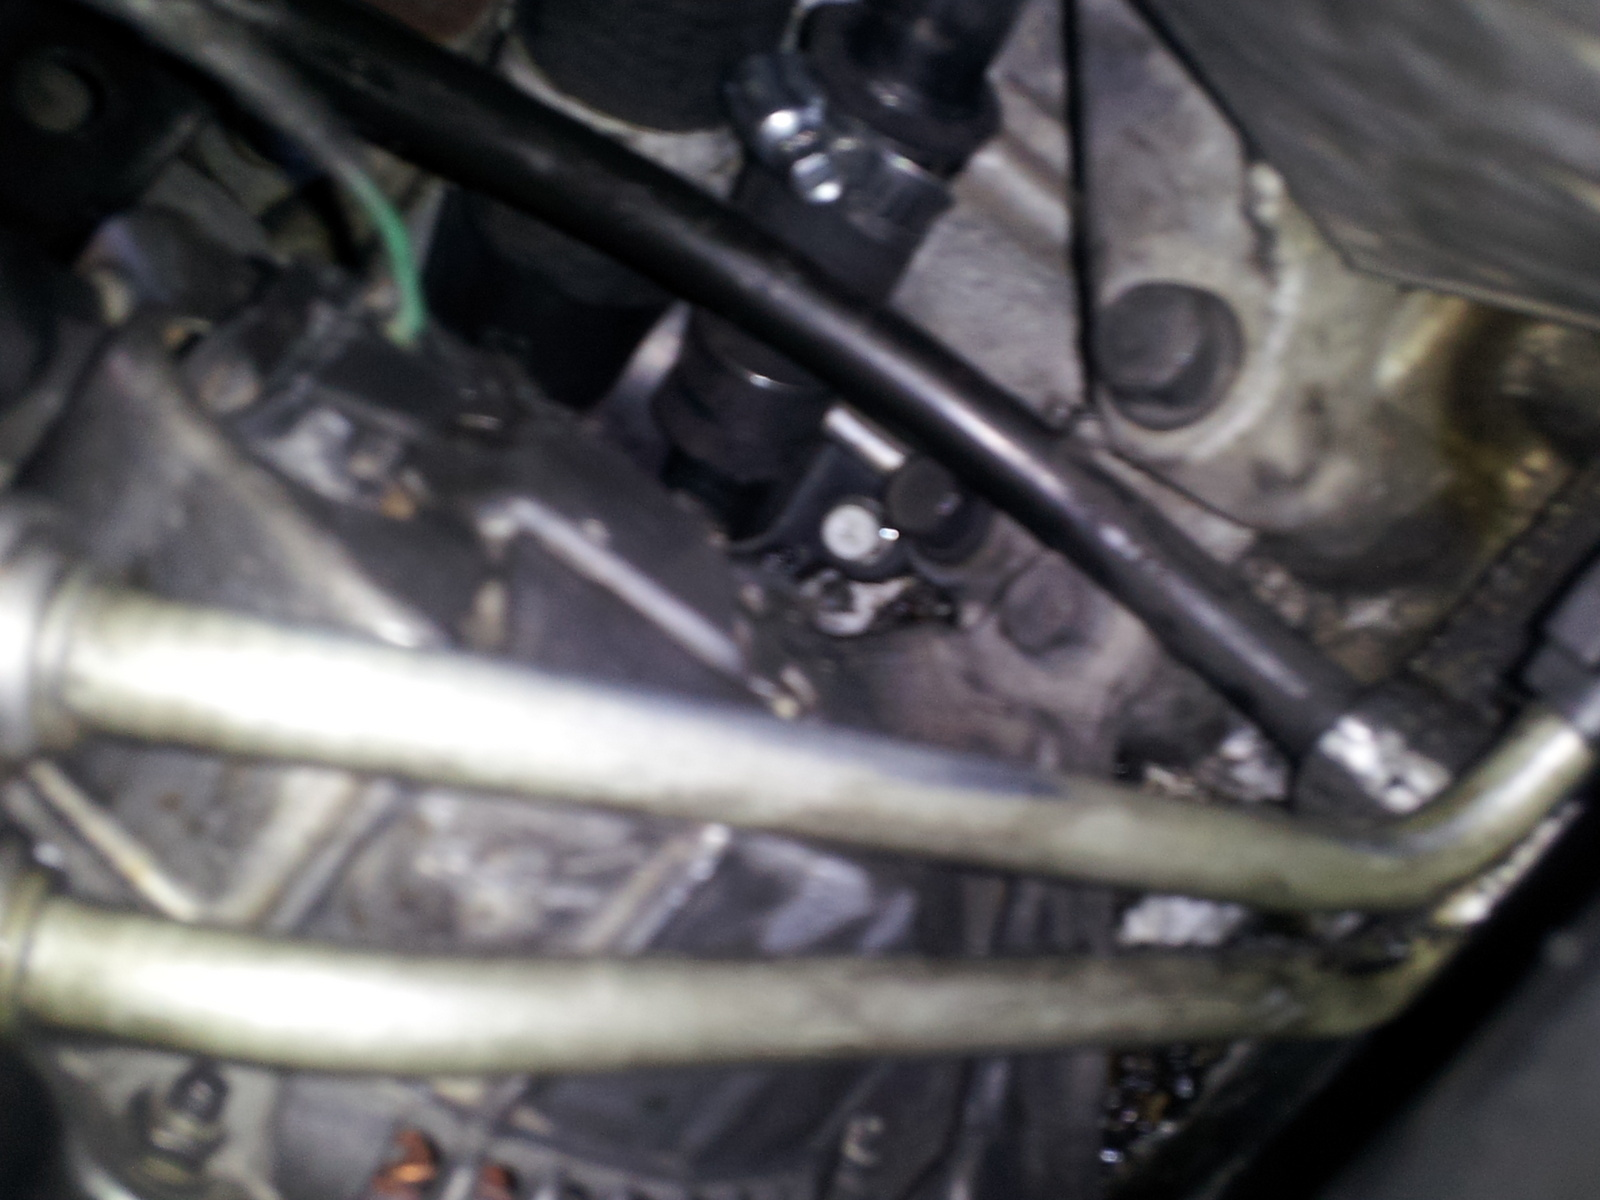 Dodge Intrepid Questions 27 Engine Have A Little Hole That Keeps Ford 3 Valve Diagram Leaking Coolant From The Motor Its Not Cracked And There Is No Grooves So Screw Missing We Think It Might